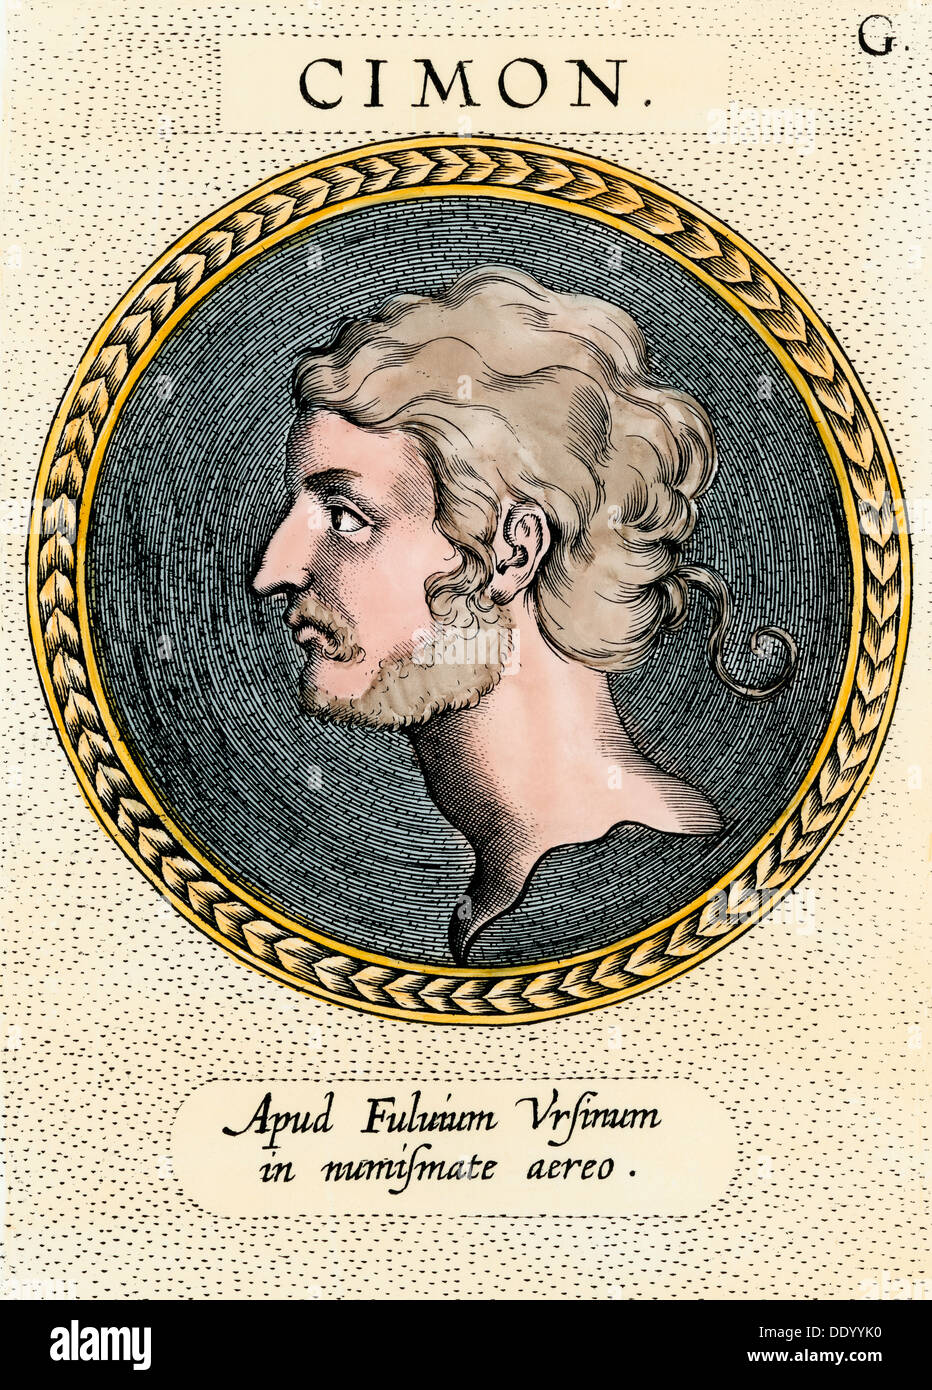 Cimon, general and naval commander of ancient Athens. Hand-colored etching - Stock Image